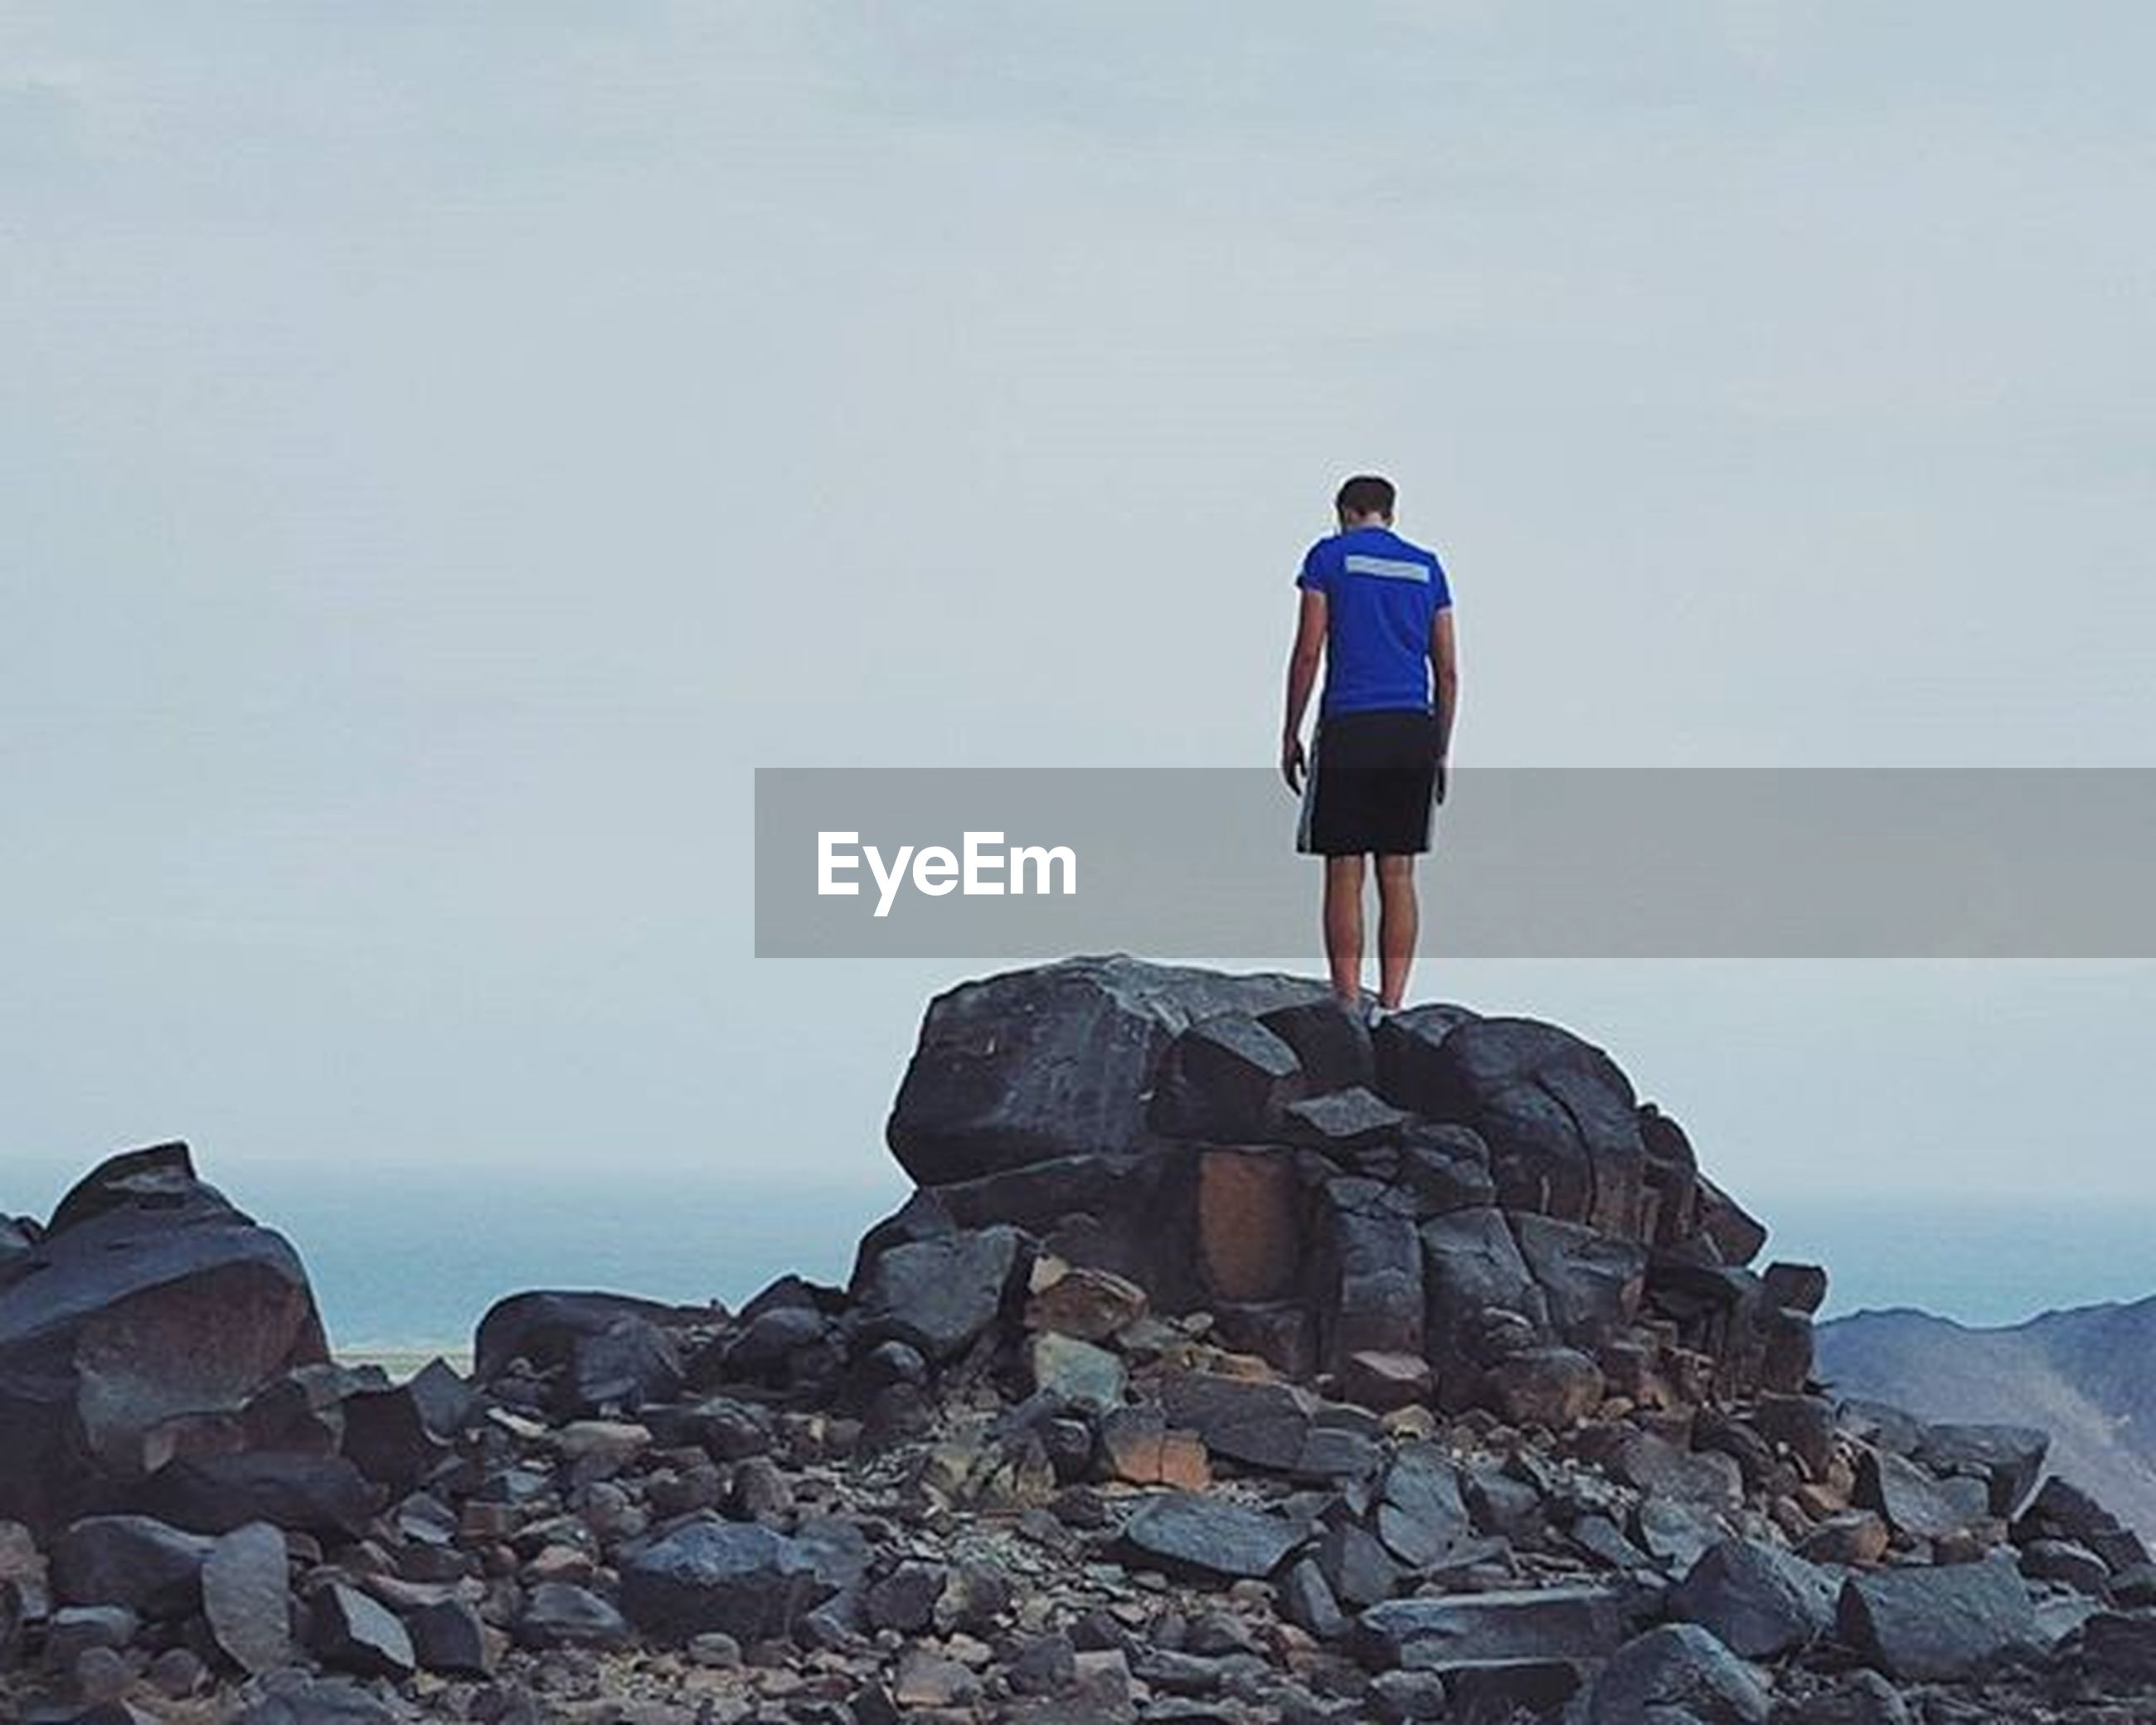 lifestyles, rock - object, leisure activity, full length, rear view, men, standing, copy space, sky, clear sky, sea, person, casual clothing, rock formation, horizon over water, rock, tranquility, tranquil scene